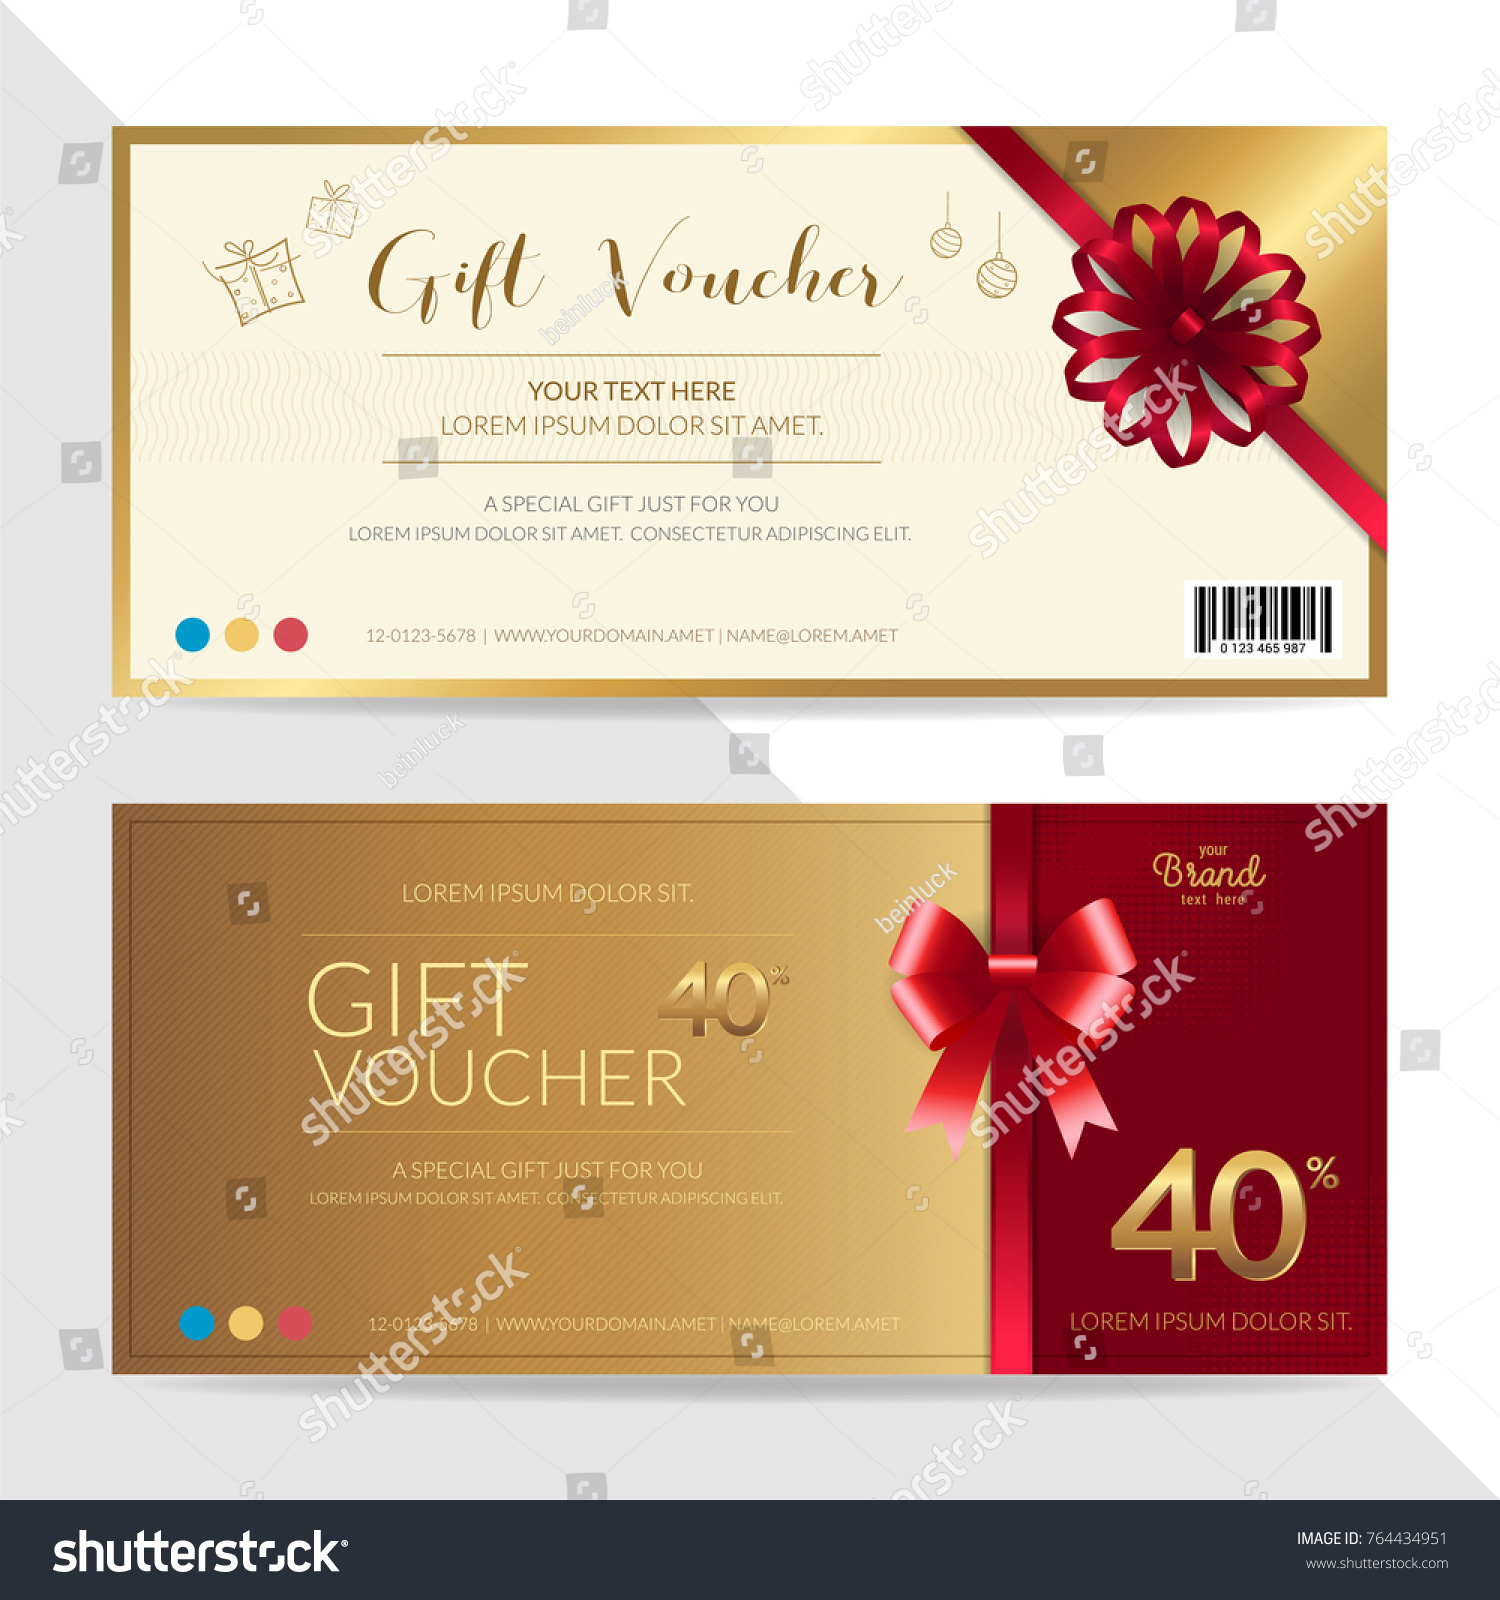 Gift Certificate Voucher Gift Card Cash Stock Vector (Royalty Free ...